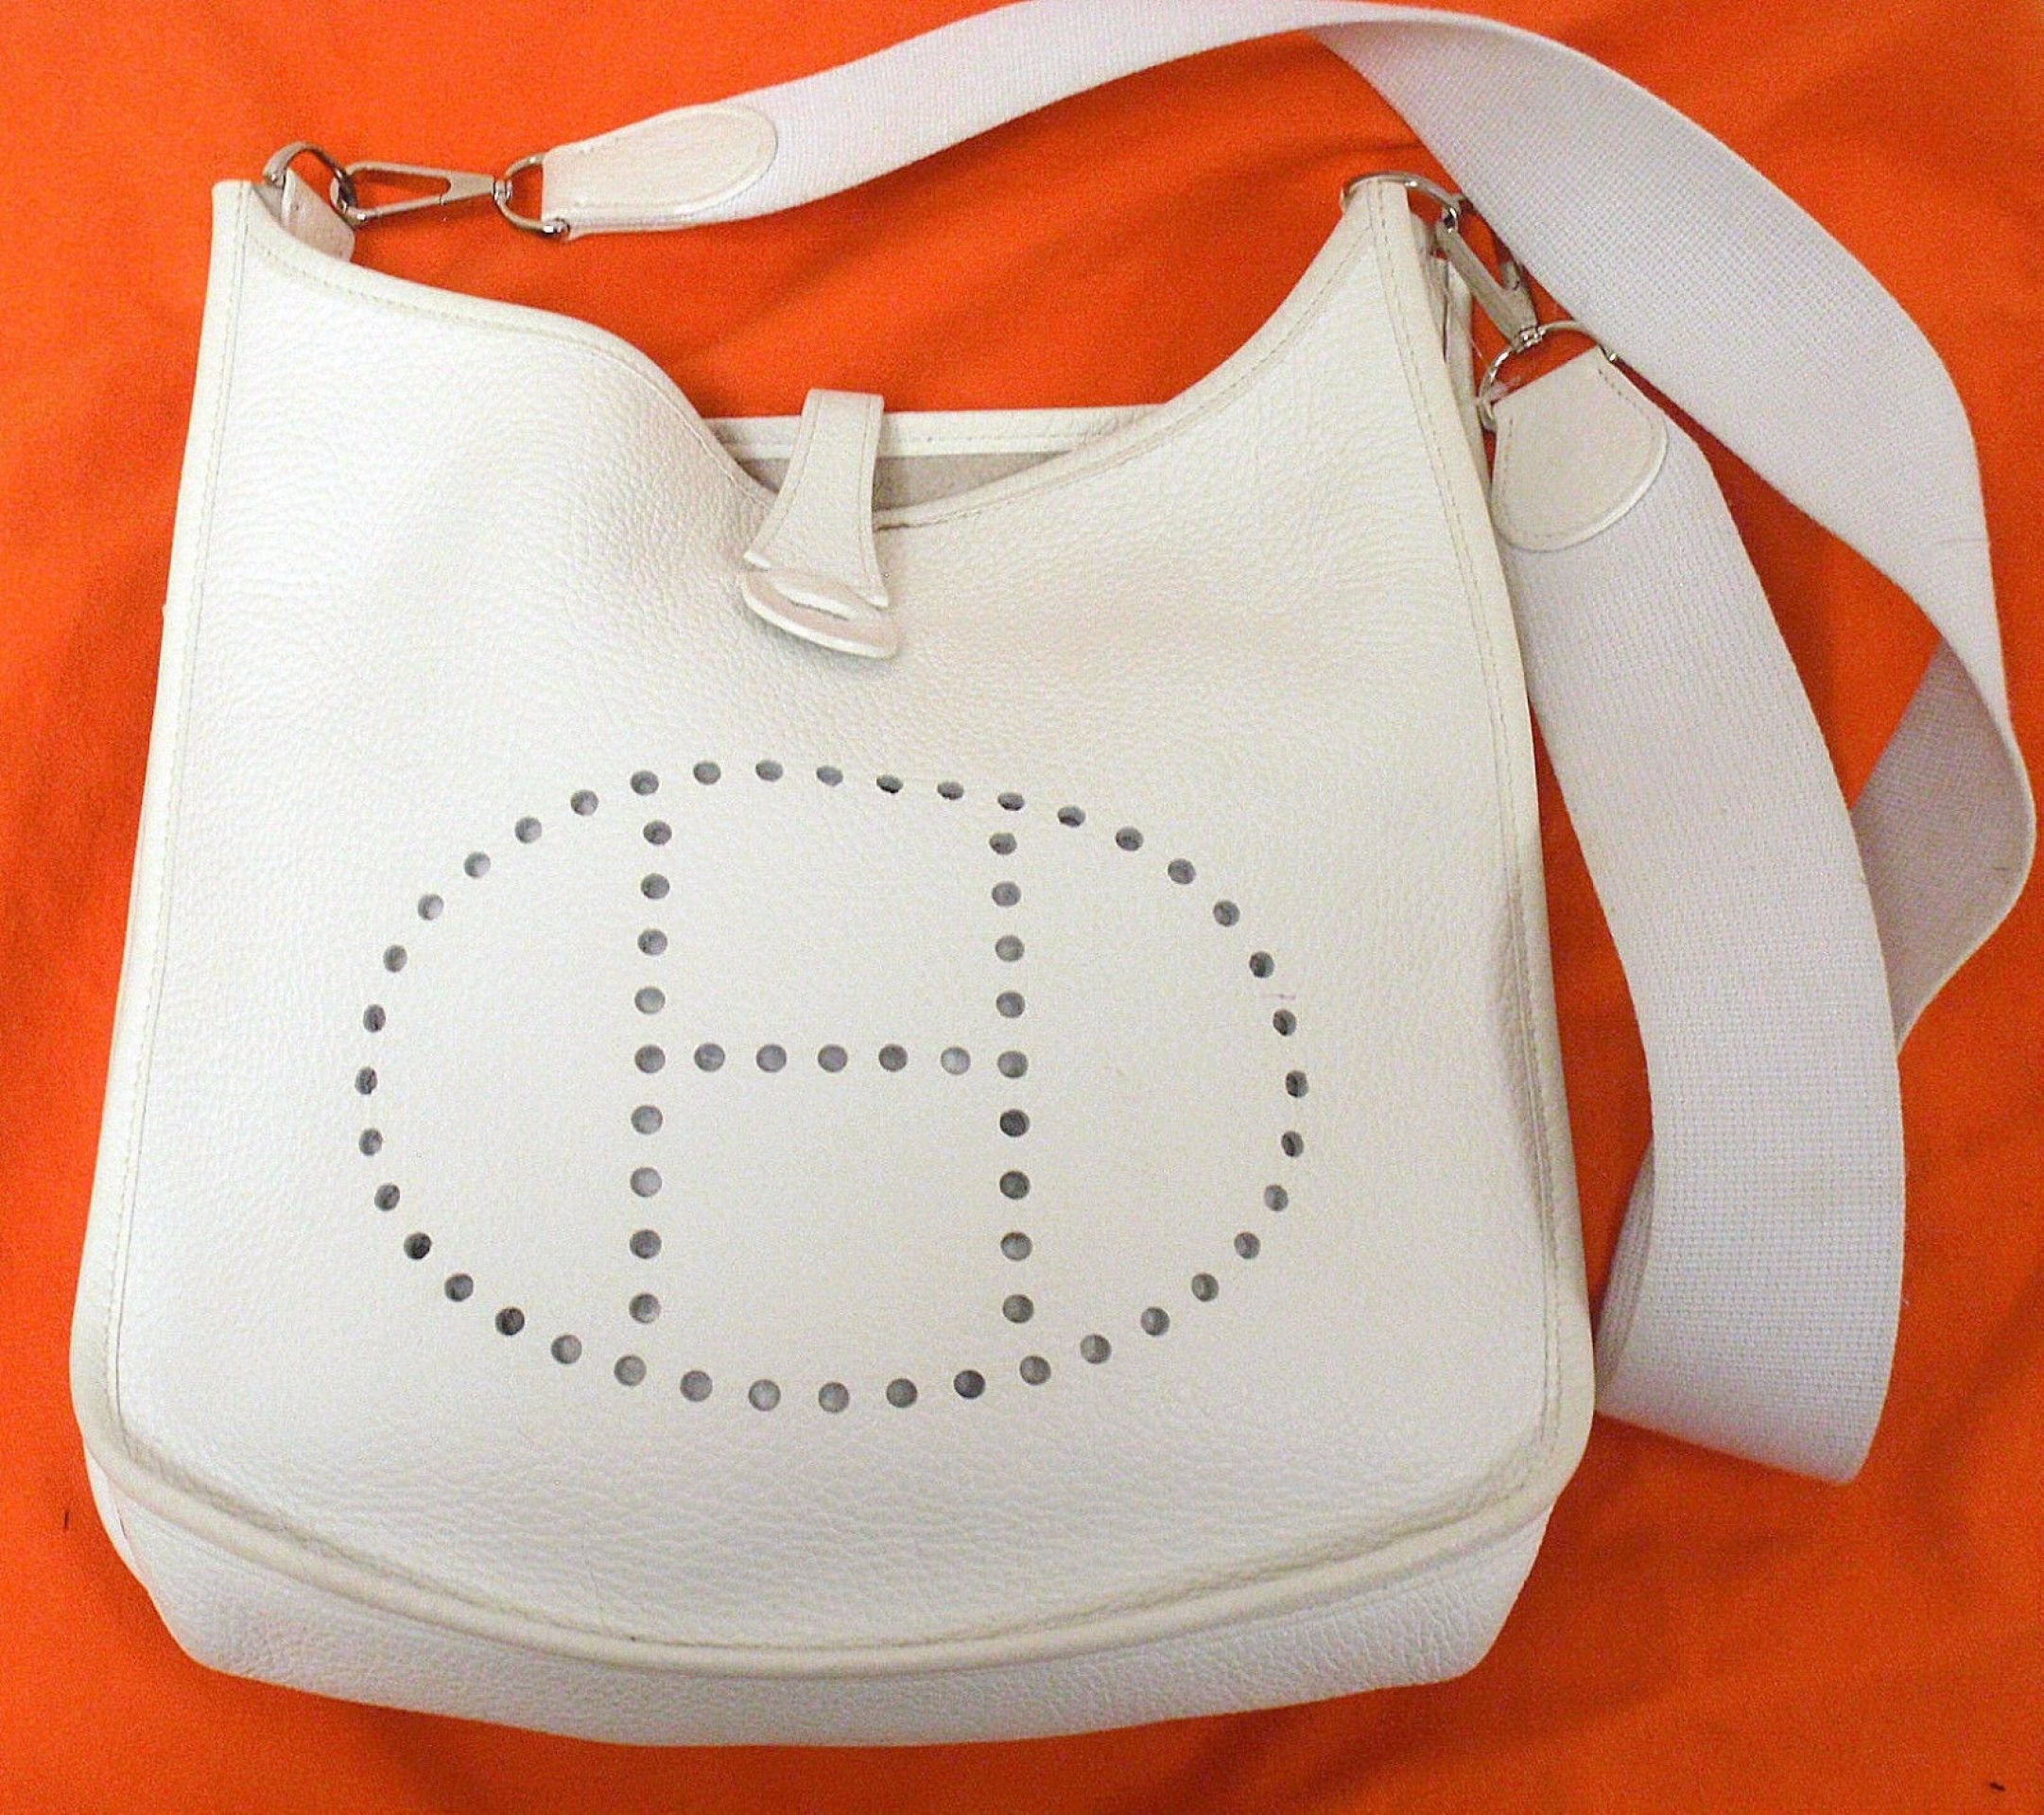 AUTHENTIC! HERMES EVELYNE PM II CREAM TOGO LEATHER SHW SHOULDER BAG